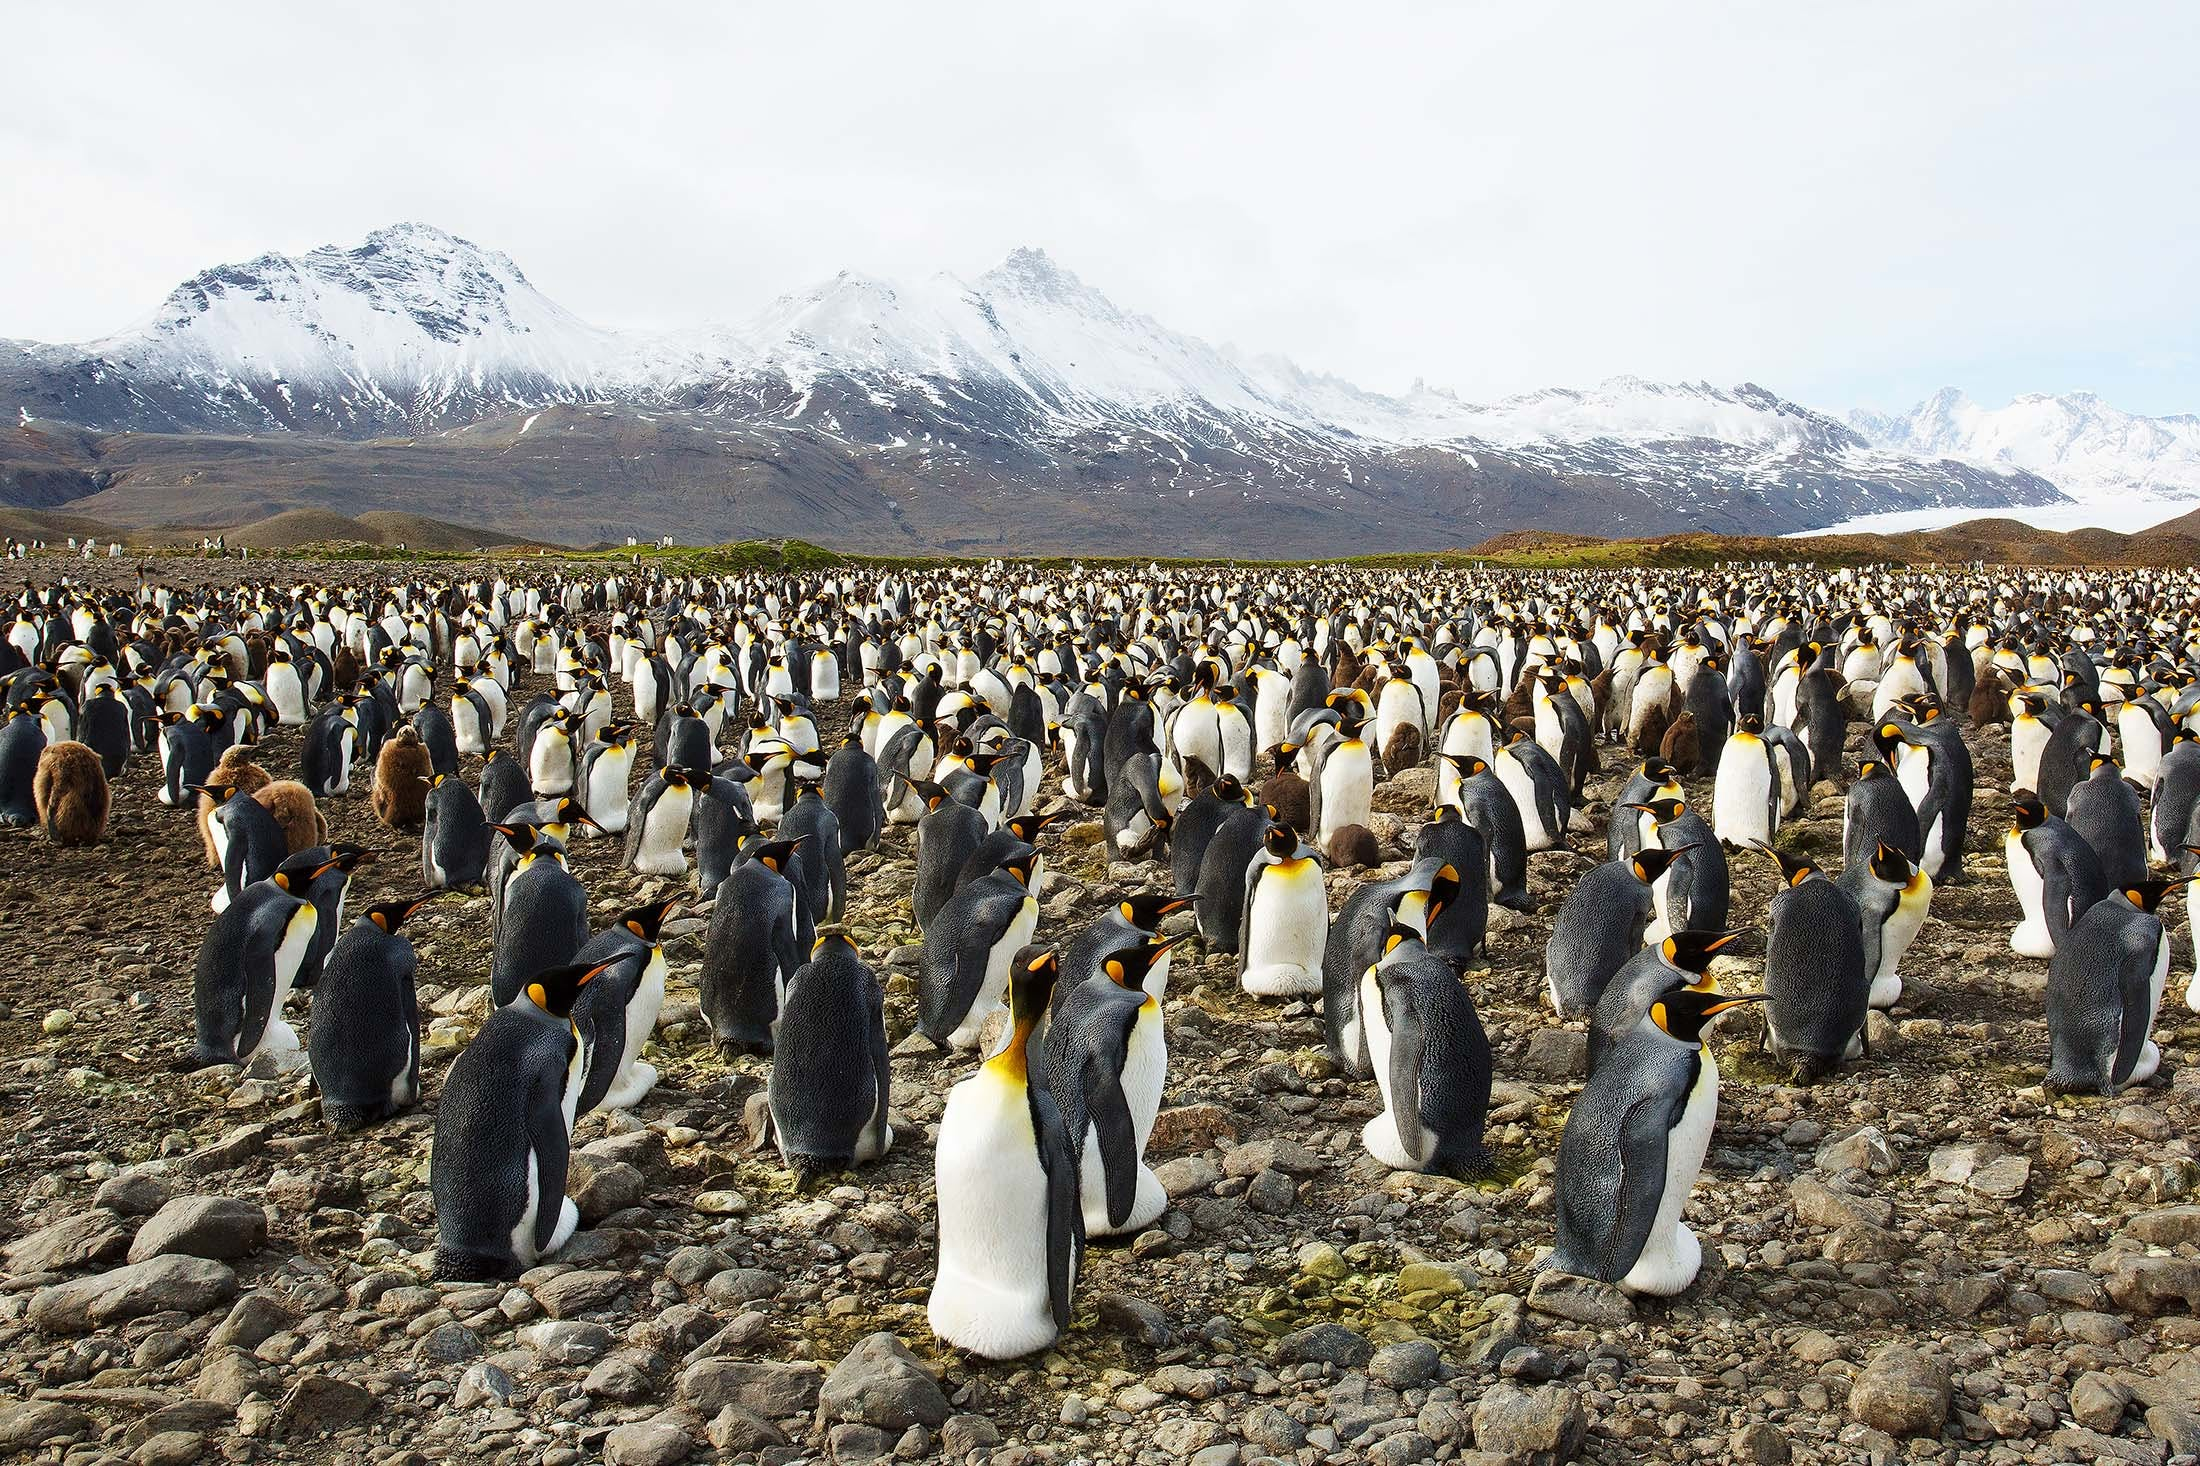 King Penguins in Fortuna Bay, South Georgia.